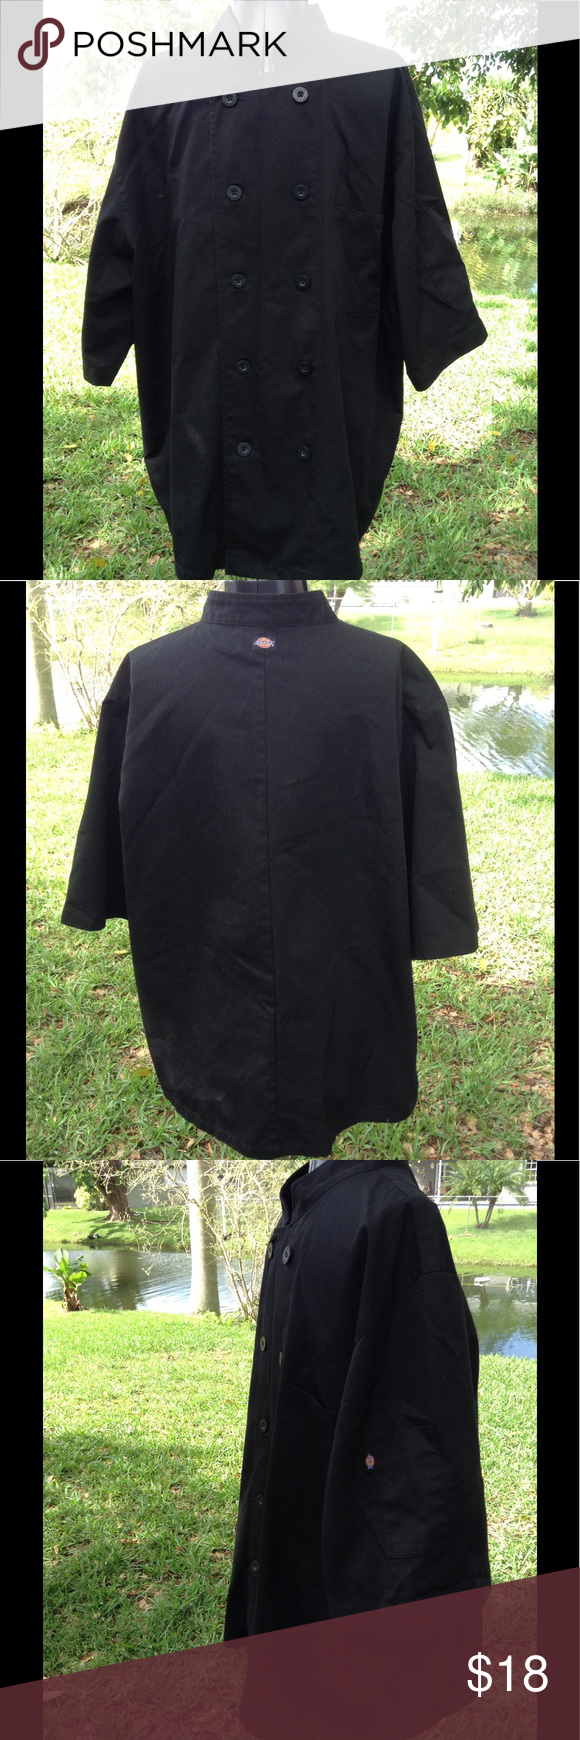 Mens Dickies chef jacket size XL Dickies black chef jacket